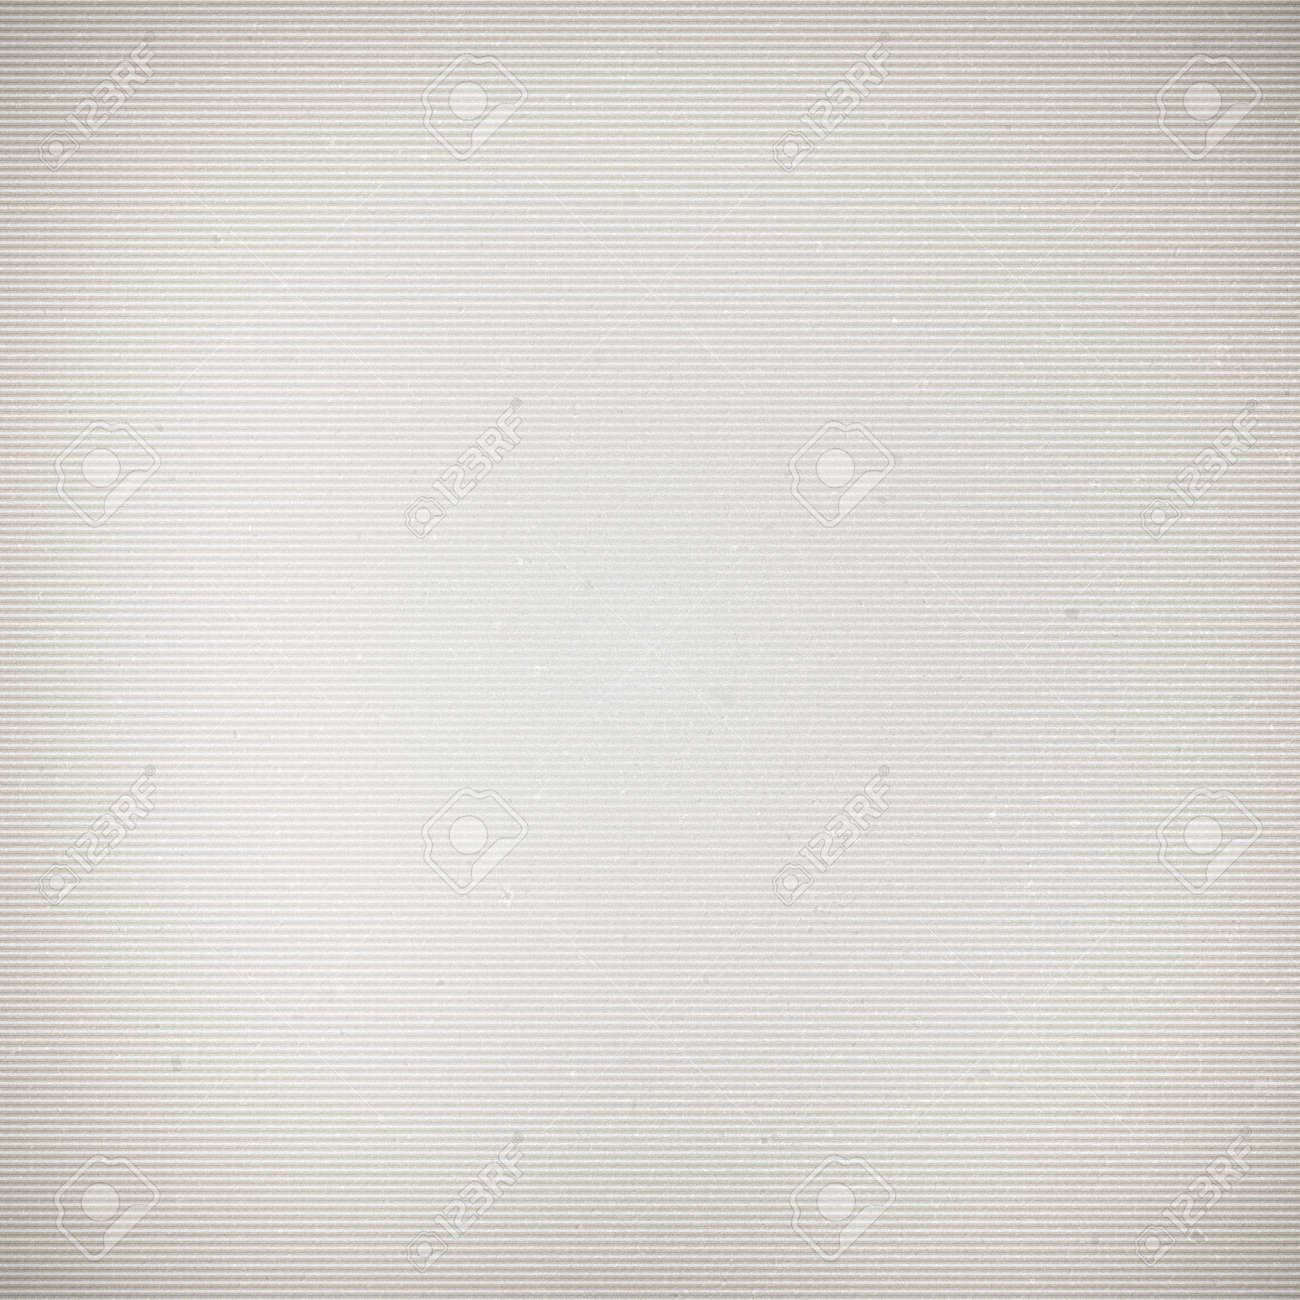 striped parchment paper texture background with delicate grid pattern Stock Photo - 15742659